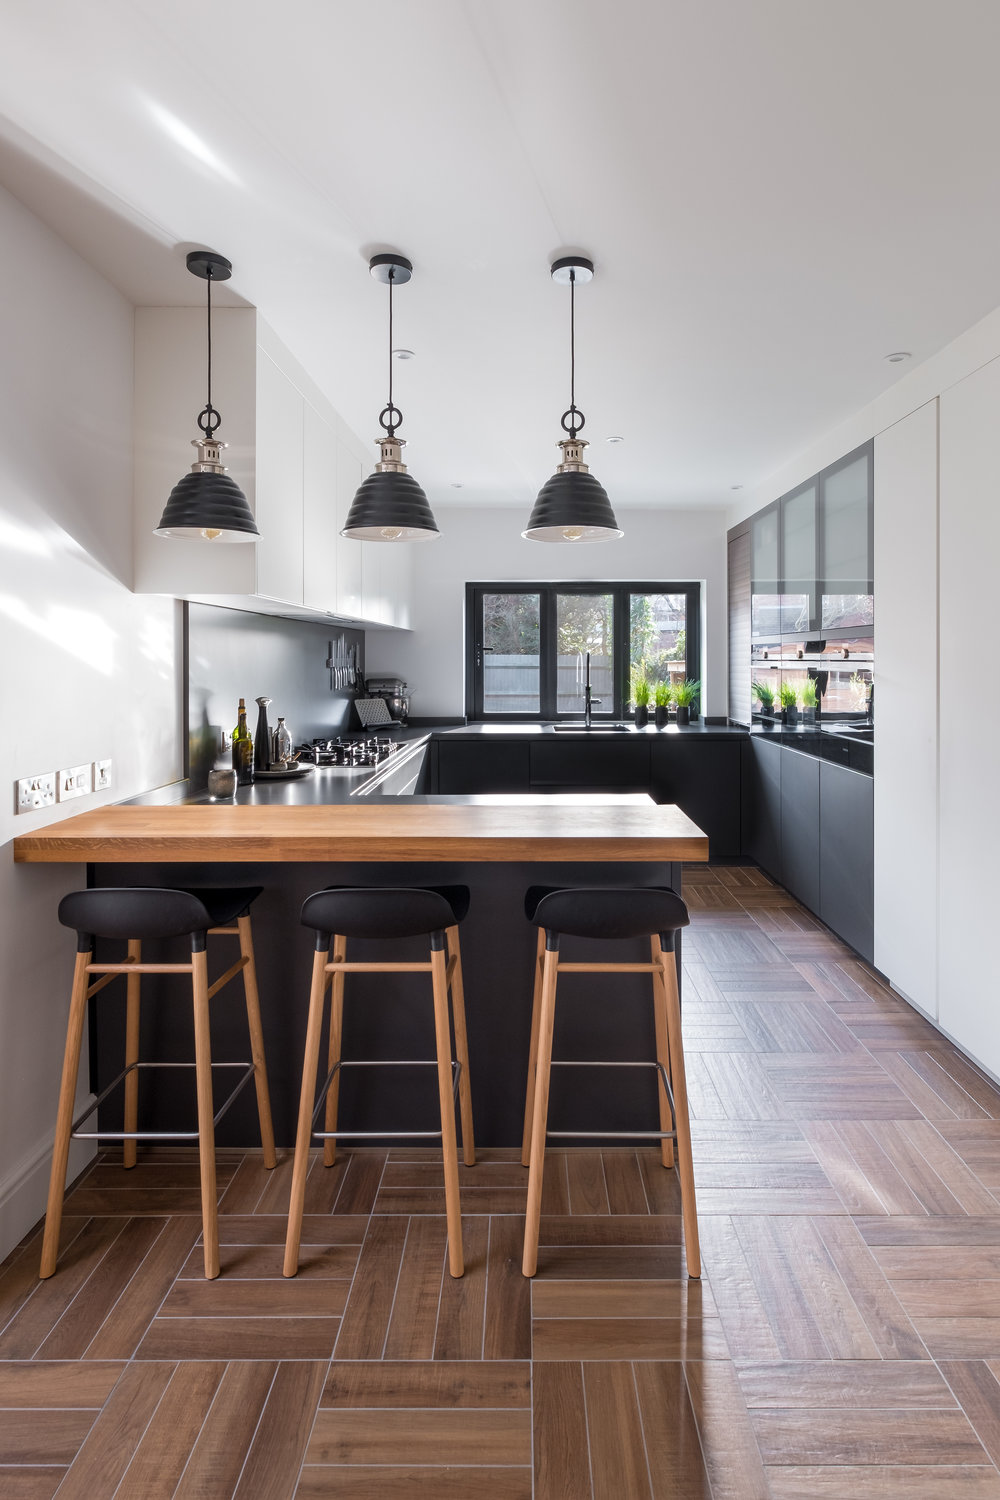 The Contour Studio Is Located In Montpellier Cheltenham And Houses A  Contemporary Collection Of Leicht Kitchens That Showcase The Very Best Of  German ...